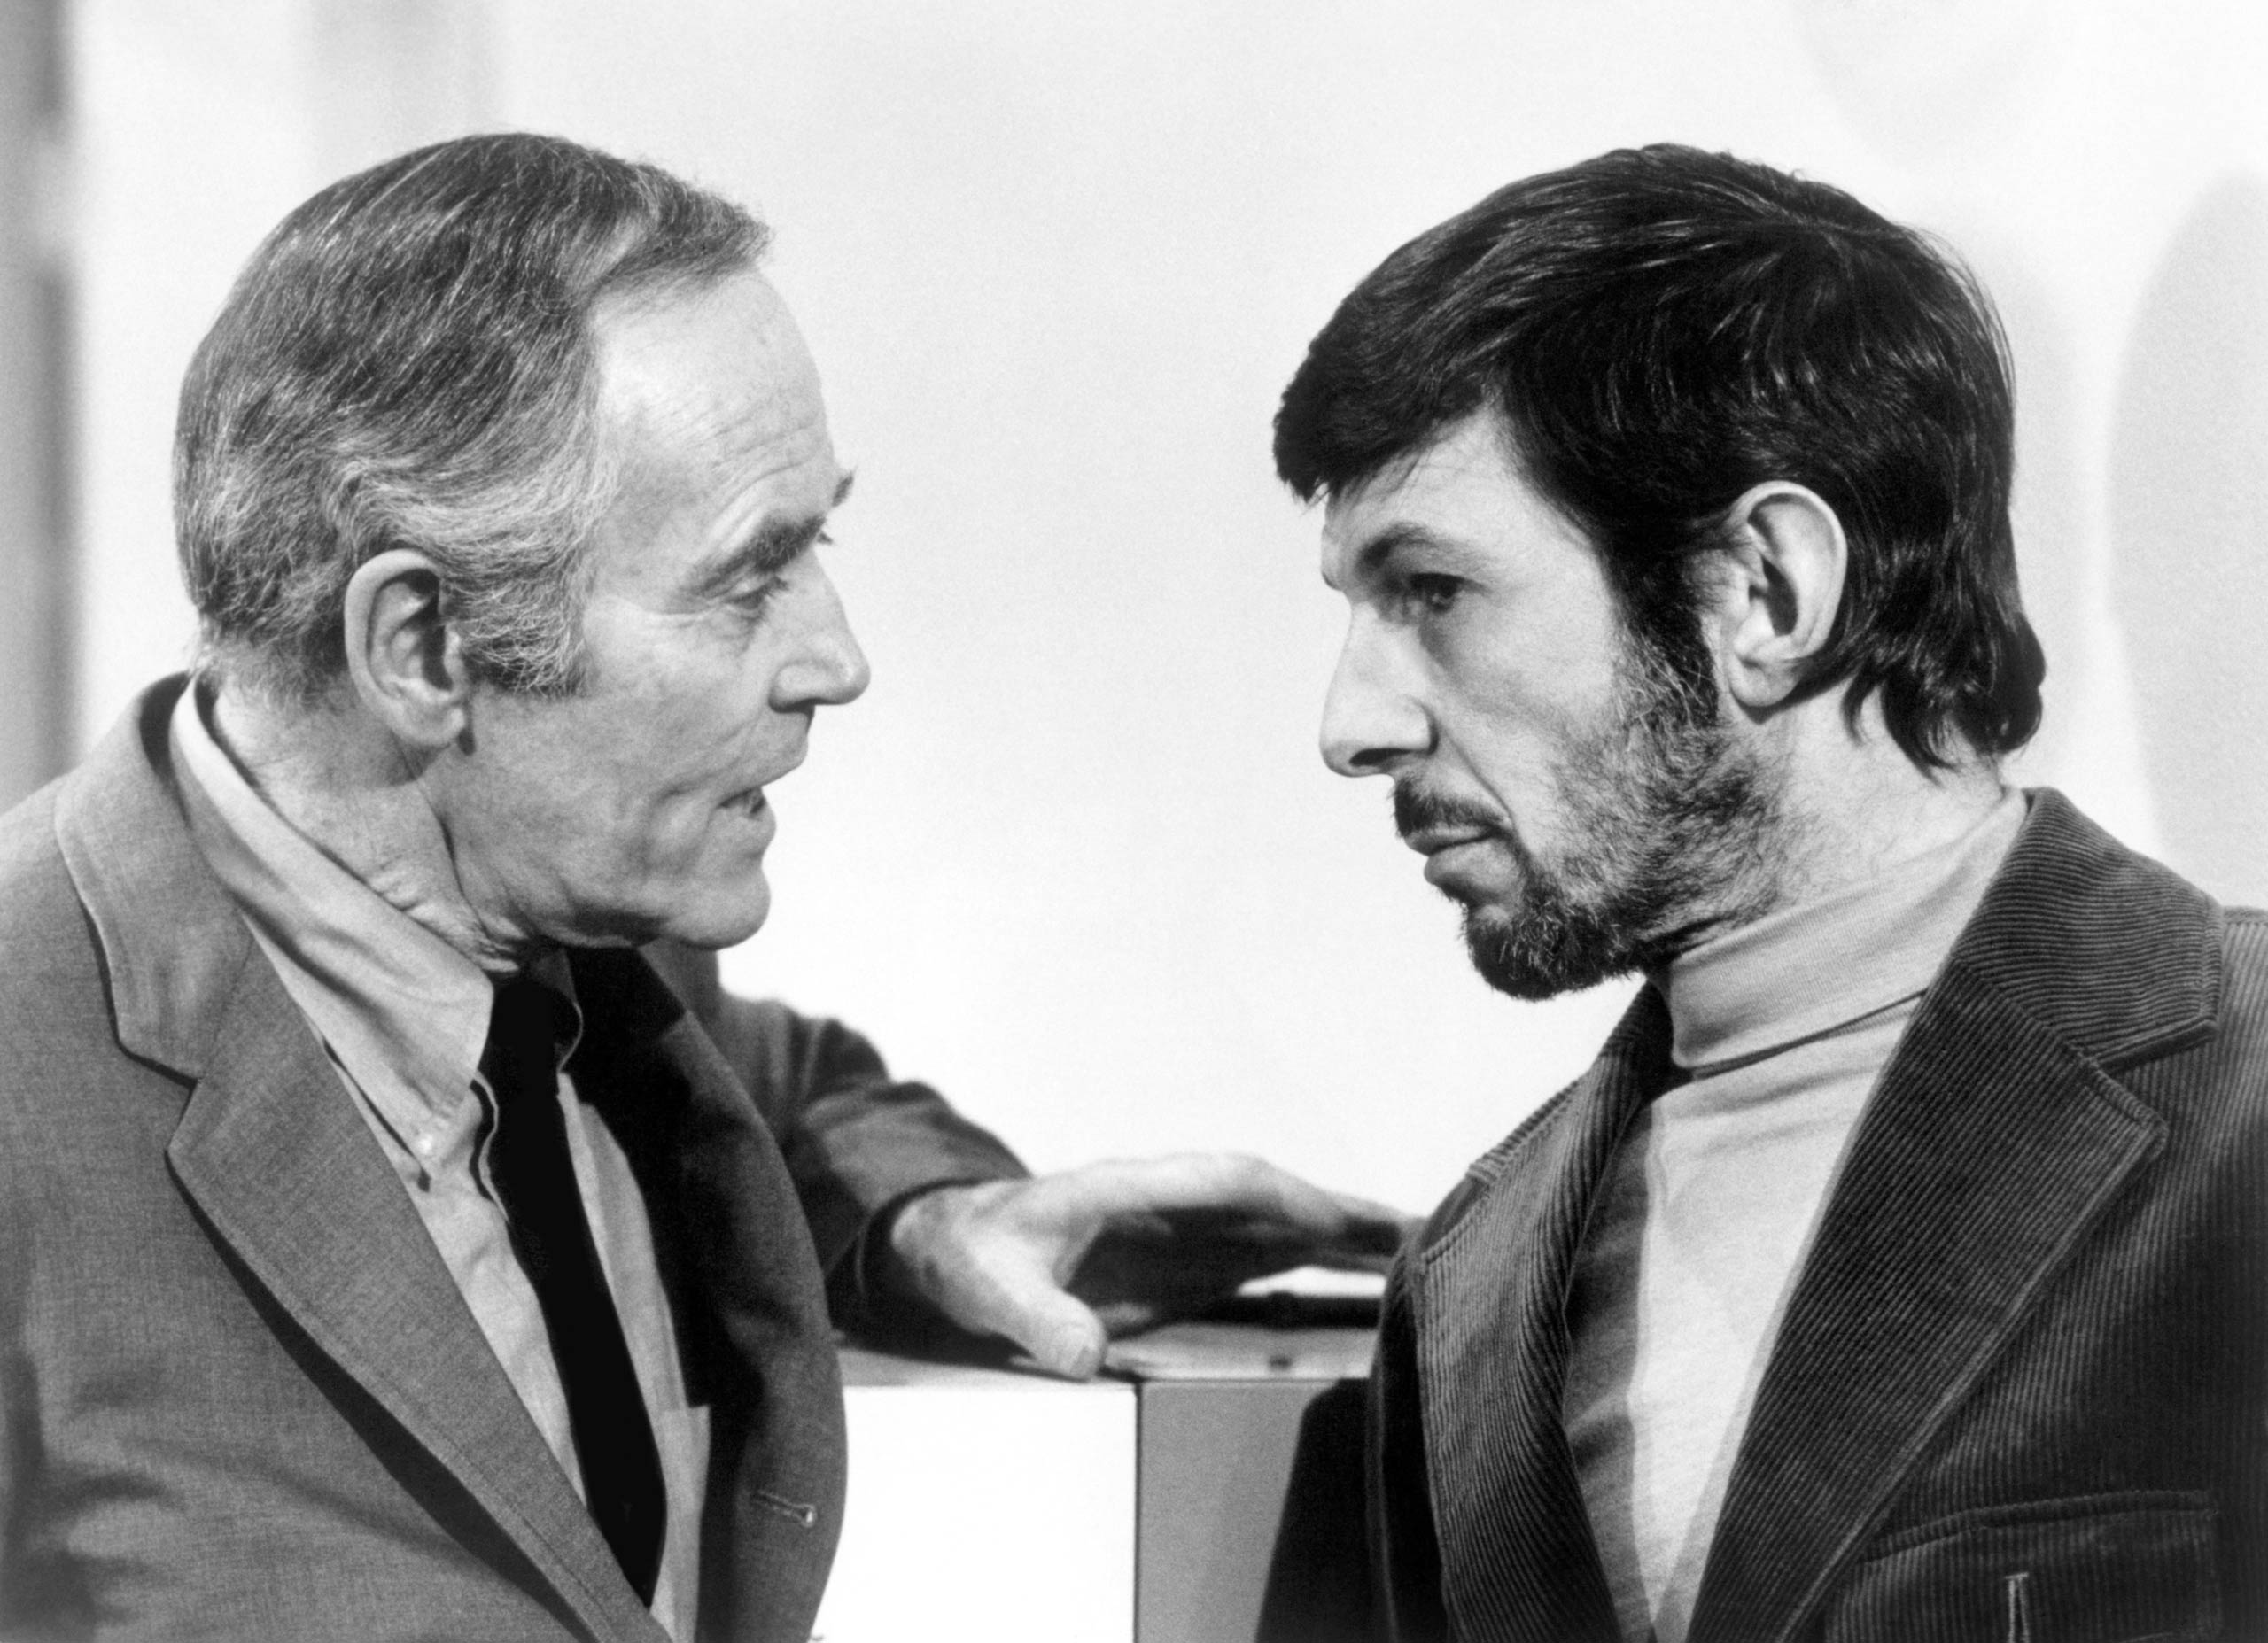 Leonard Nimoy in <i>The Alpha Caper</i> in 1973